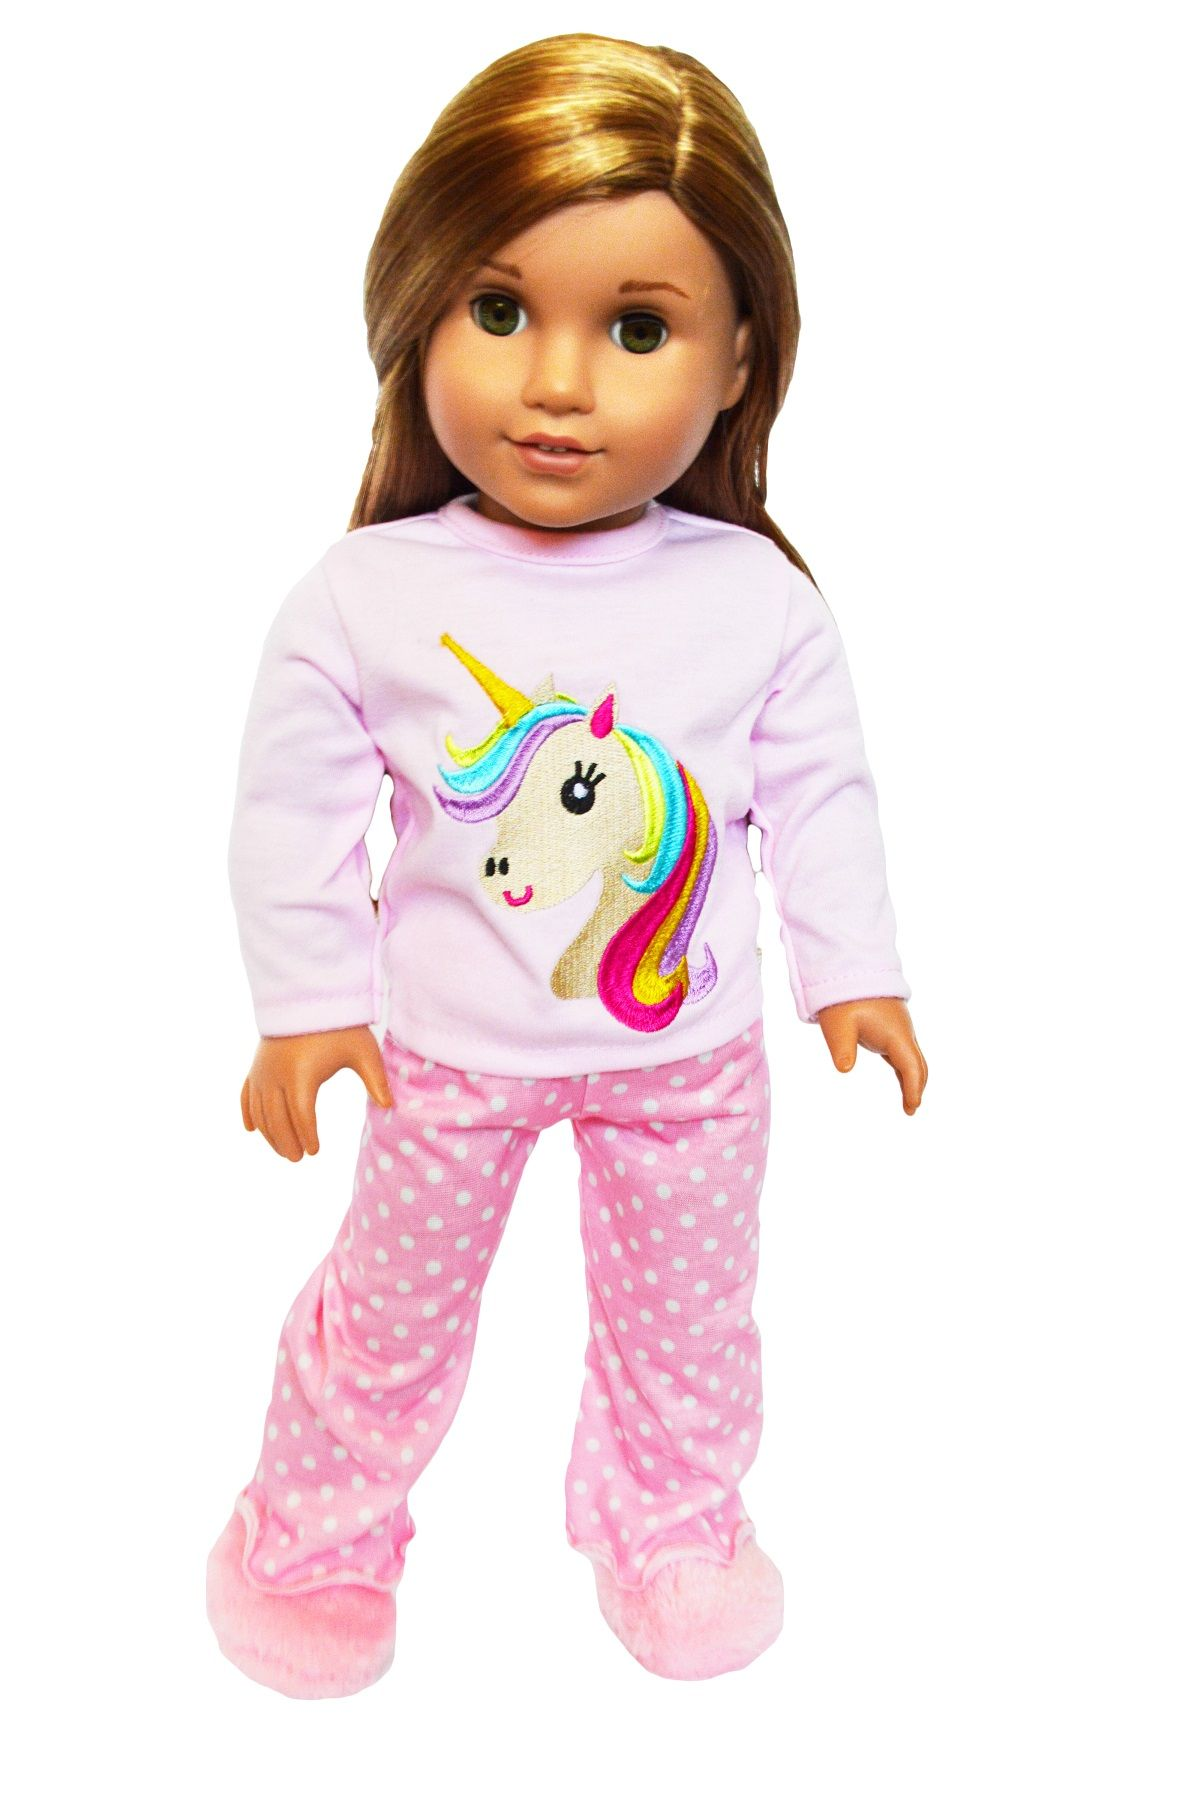 Free 2 Day Shipping Buy My Brittany S Unicorn Pjs For American Girl Dolls My American Girl Doll Hairstyles Doll Clothes American Girl American Girl Doll Diy